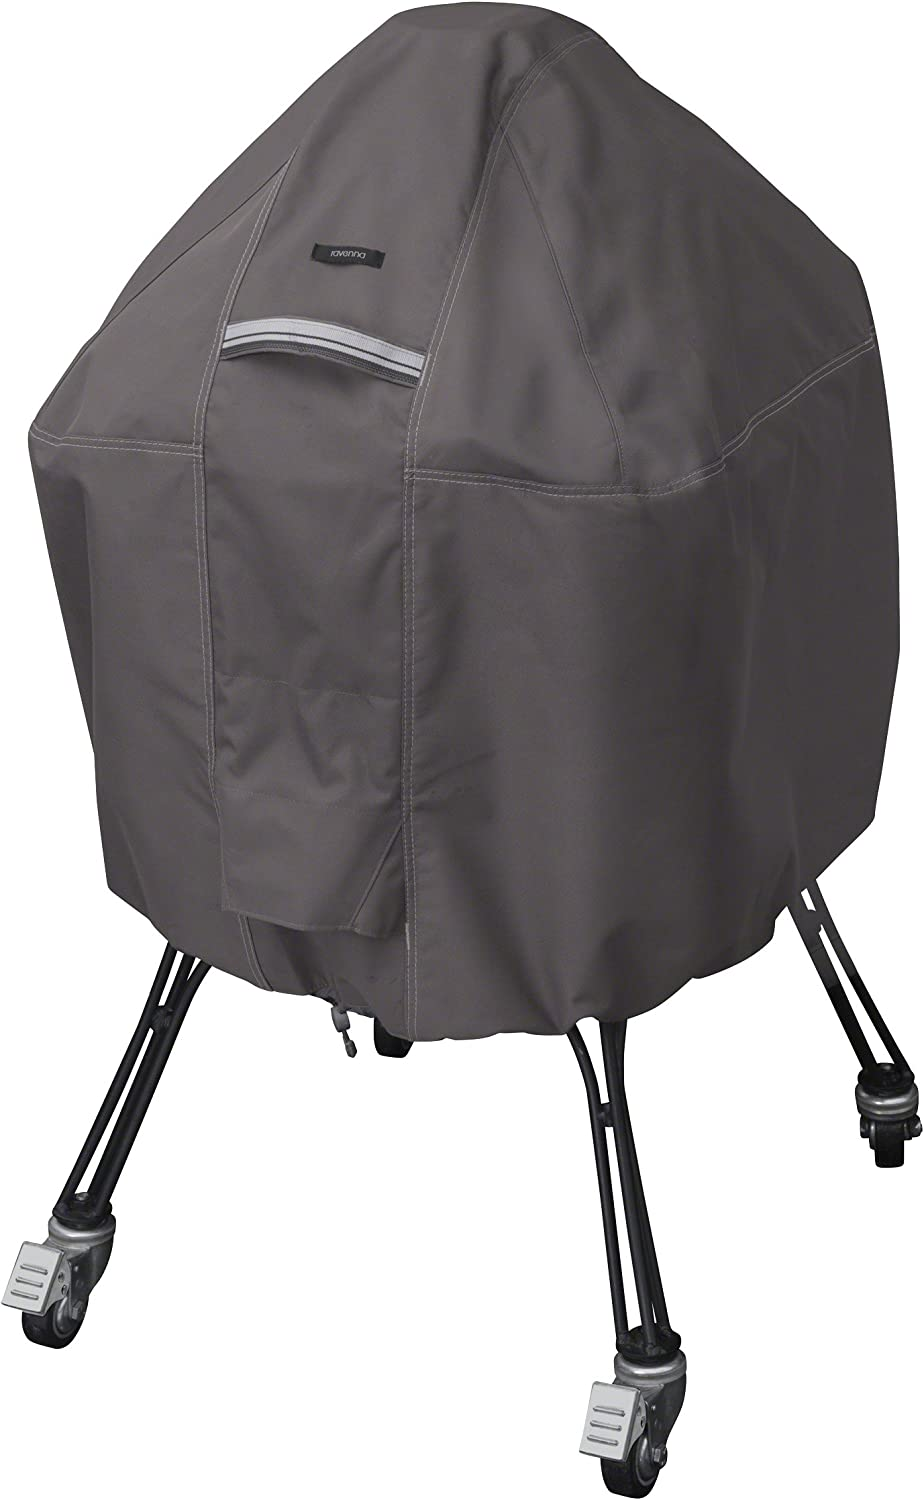 Classic Accessories Ravenna Cover For Kamado Ceramic Grills, X-Large, Taupe